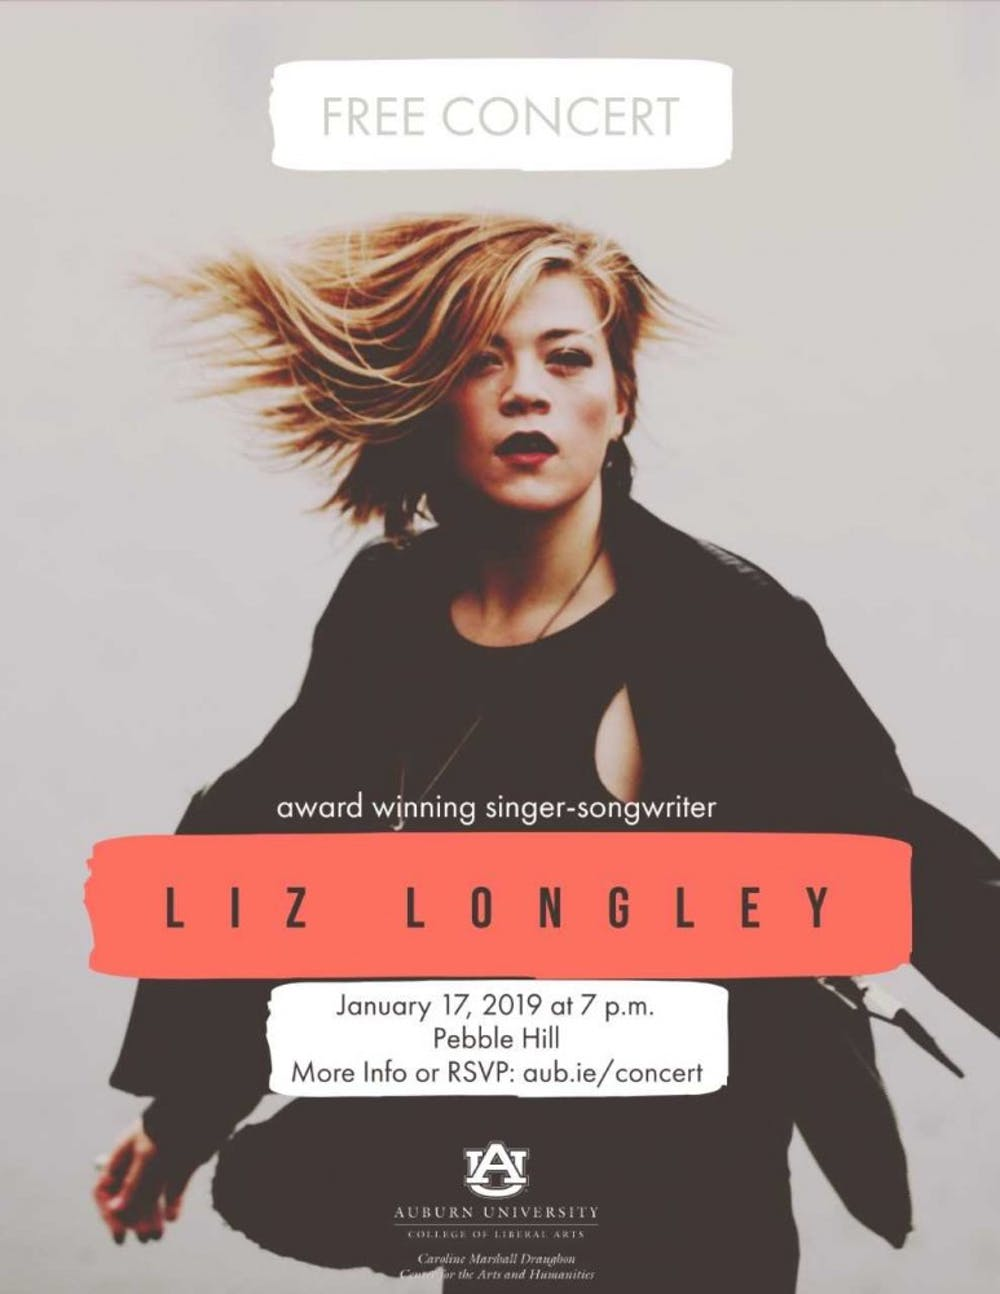 Liz Longley to perform her albums at Pebble Hill